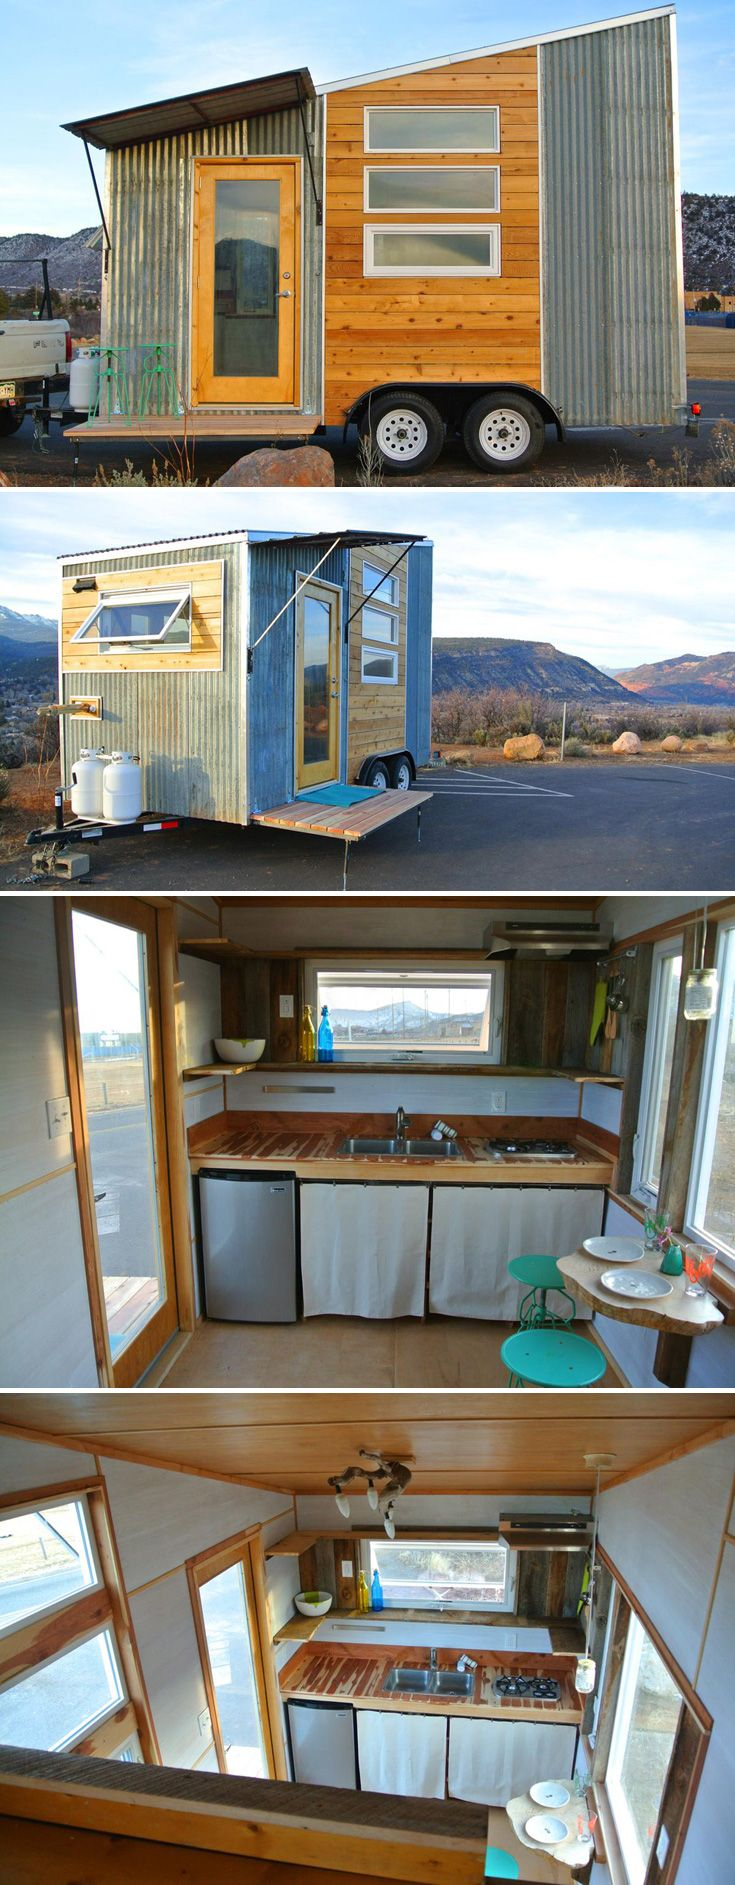 Best Ideas About Small Tiny House On Pinterest Small House - Interiors of tiny houses